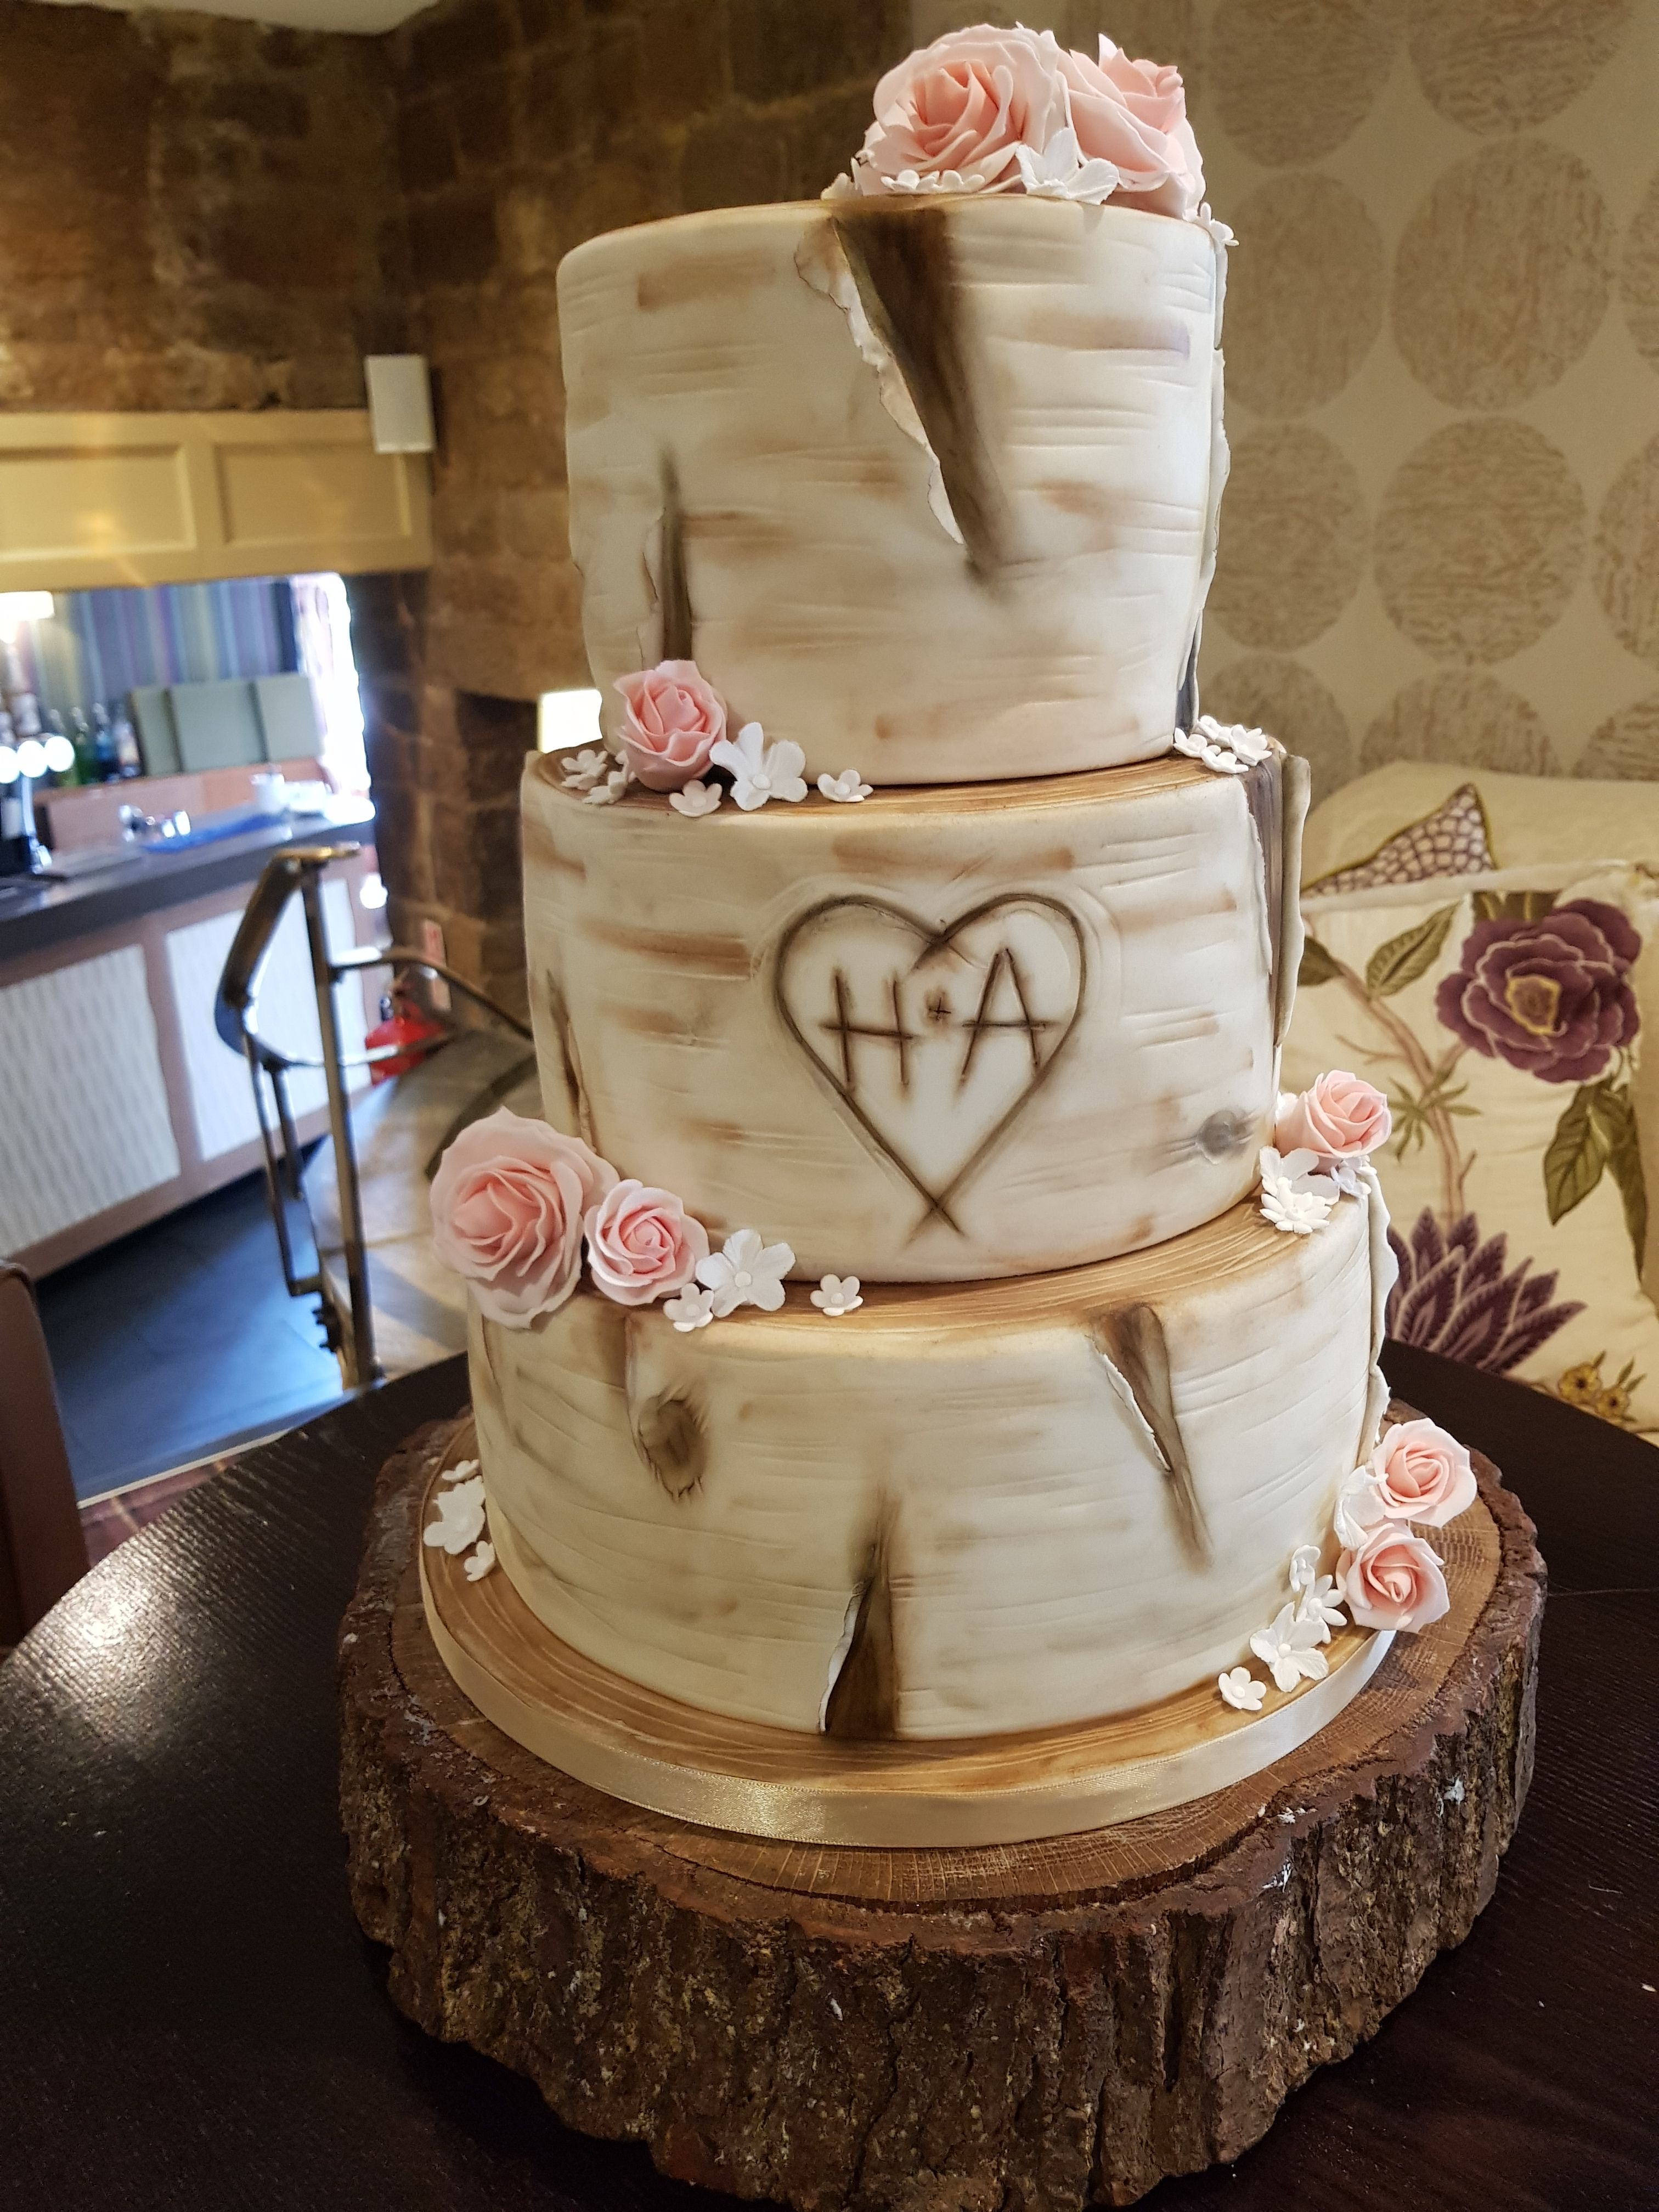 Carved with initials and added flowers in 2020 Cake